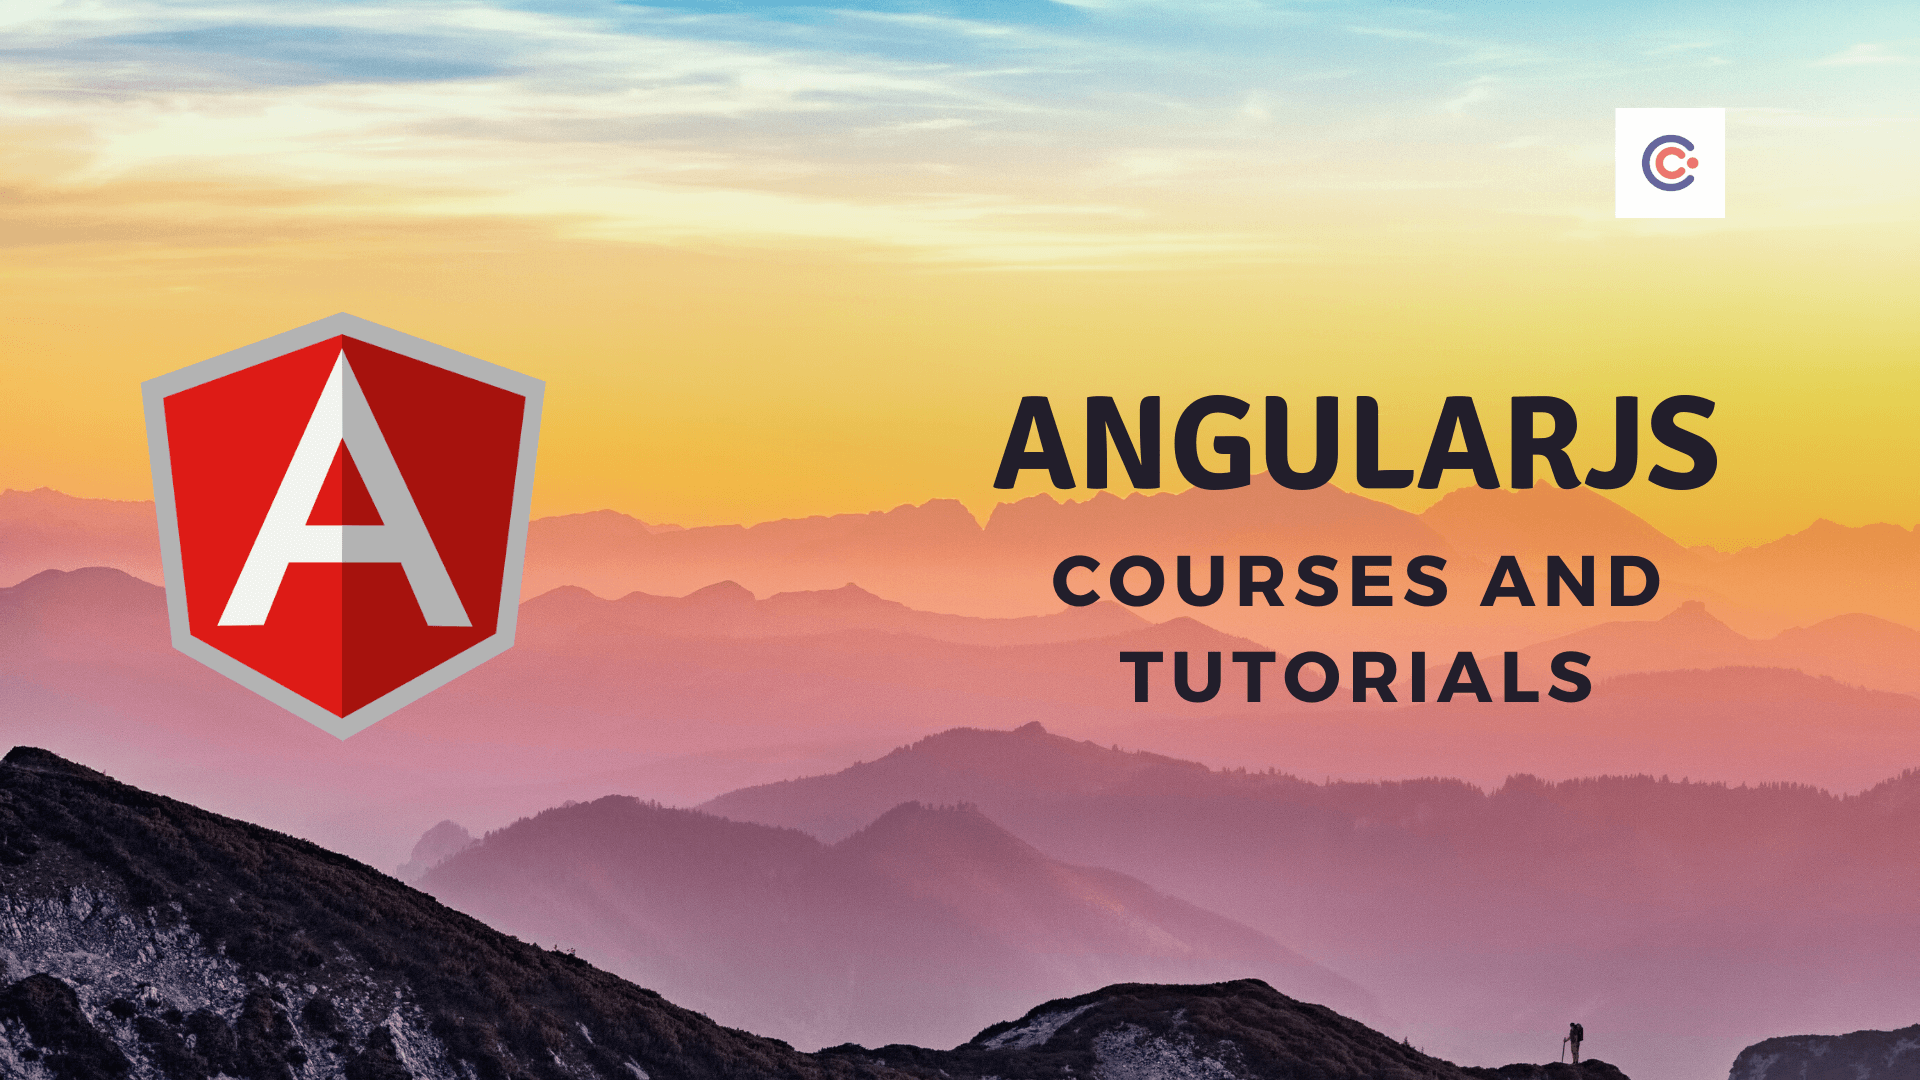 11 Best AngularJS Tutorials & Courses - Learn AngularJS Development Online